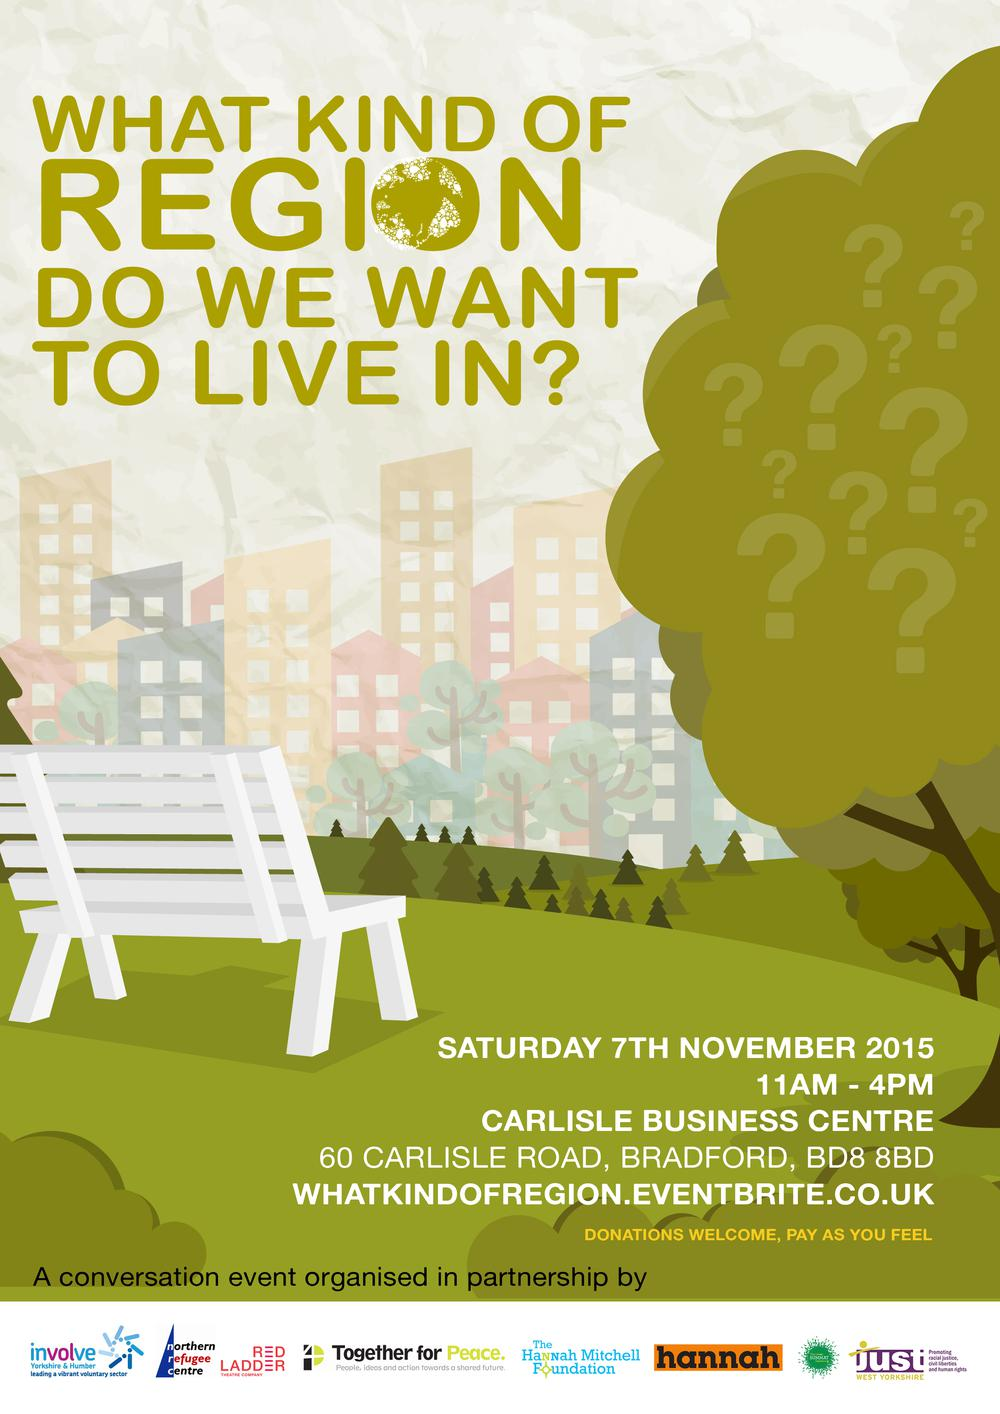 Image of the flyer for the What Kind of Region Do We Want To Live In? event in Manningham, Bradford